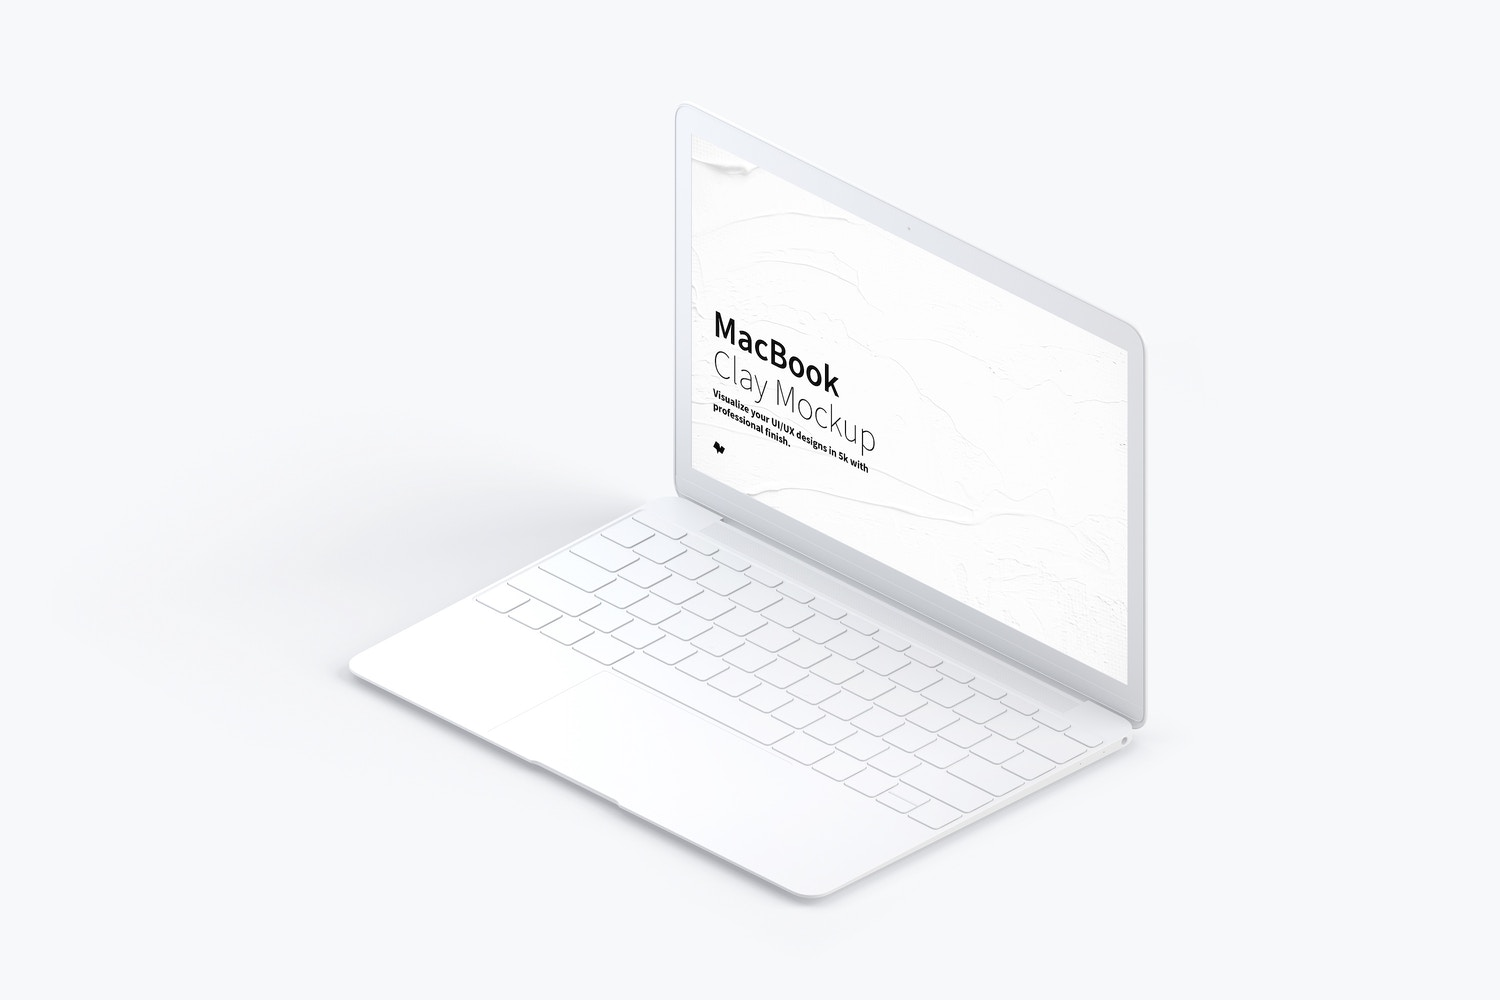 Clay MacBook Mockup, Isometric Right View (1) by Original Mockups on Original Mockups